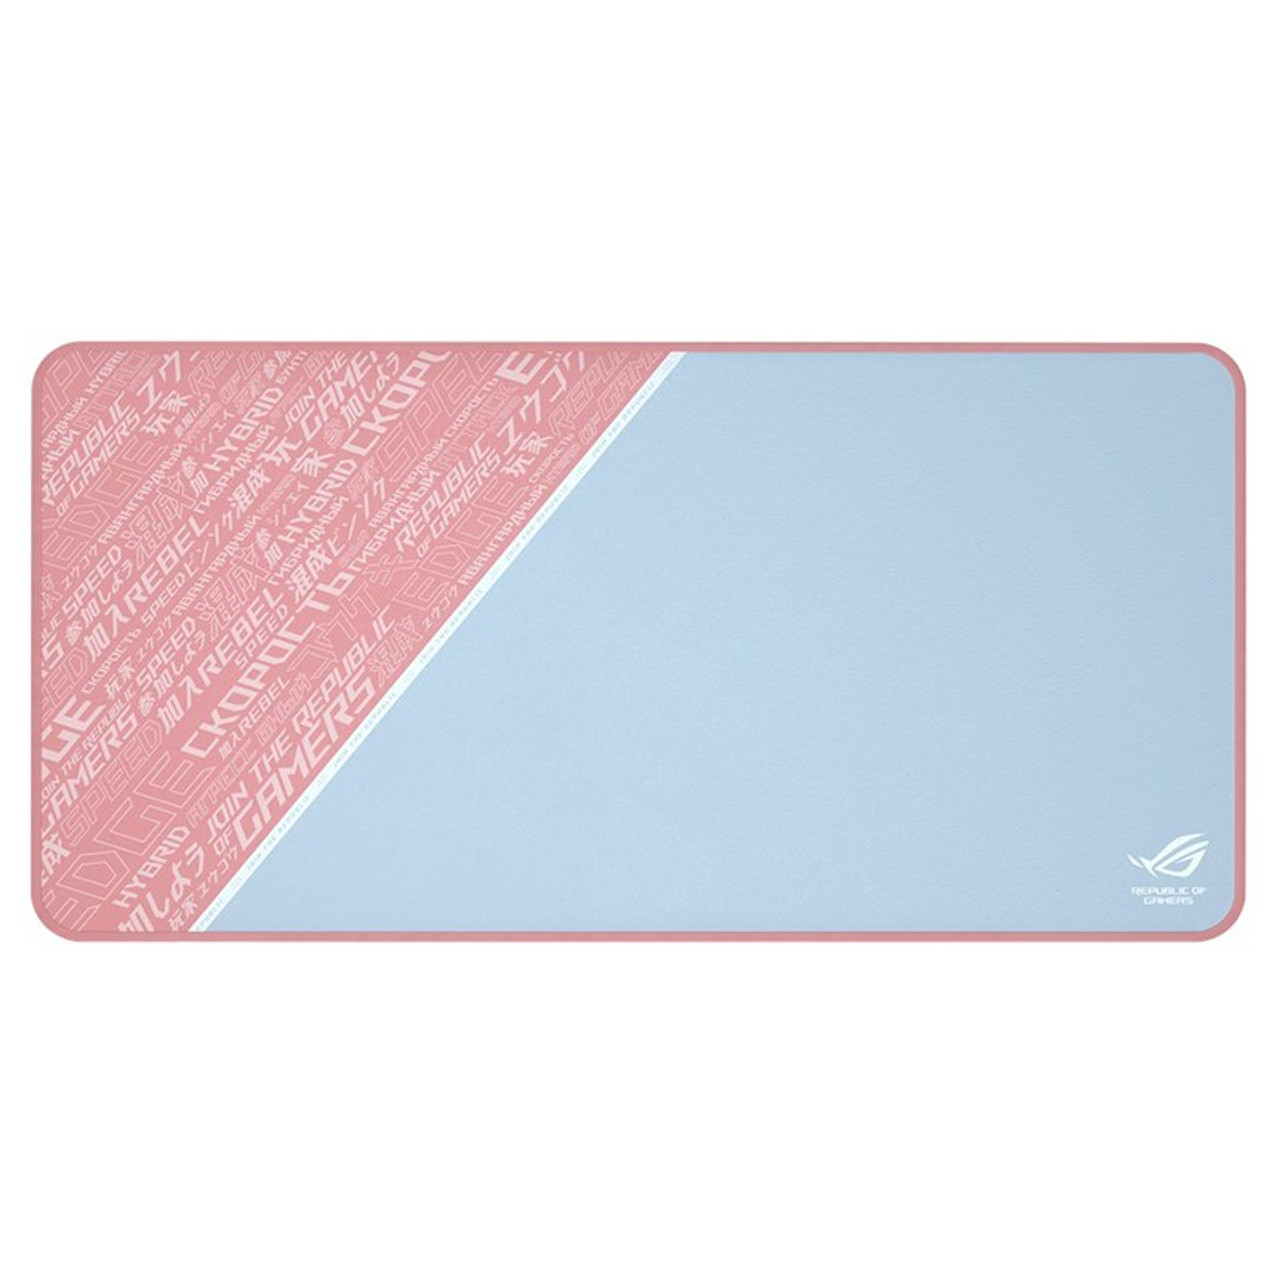 Image for Asus ROG Sheath Extended Gaming Mouse Pad - Pink Edition CX Computer Superstore